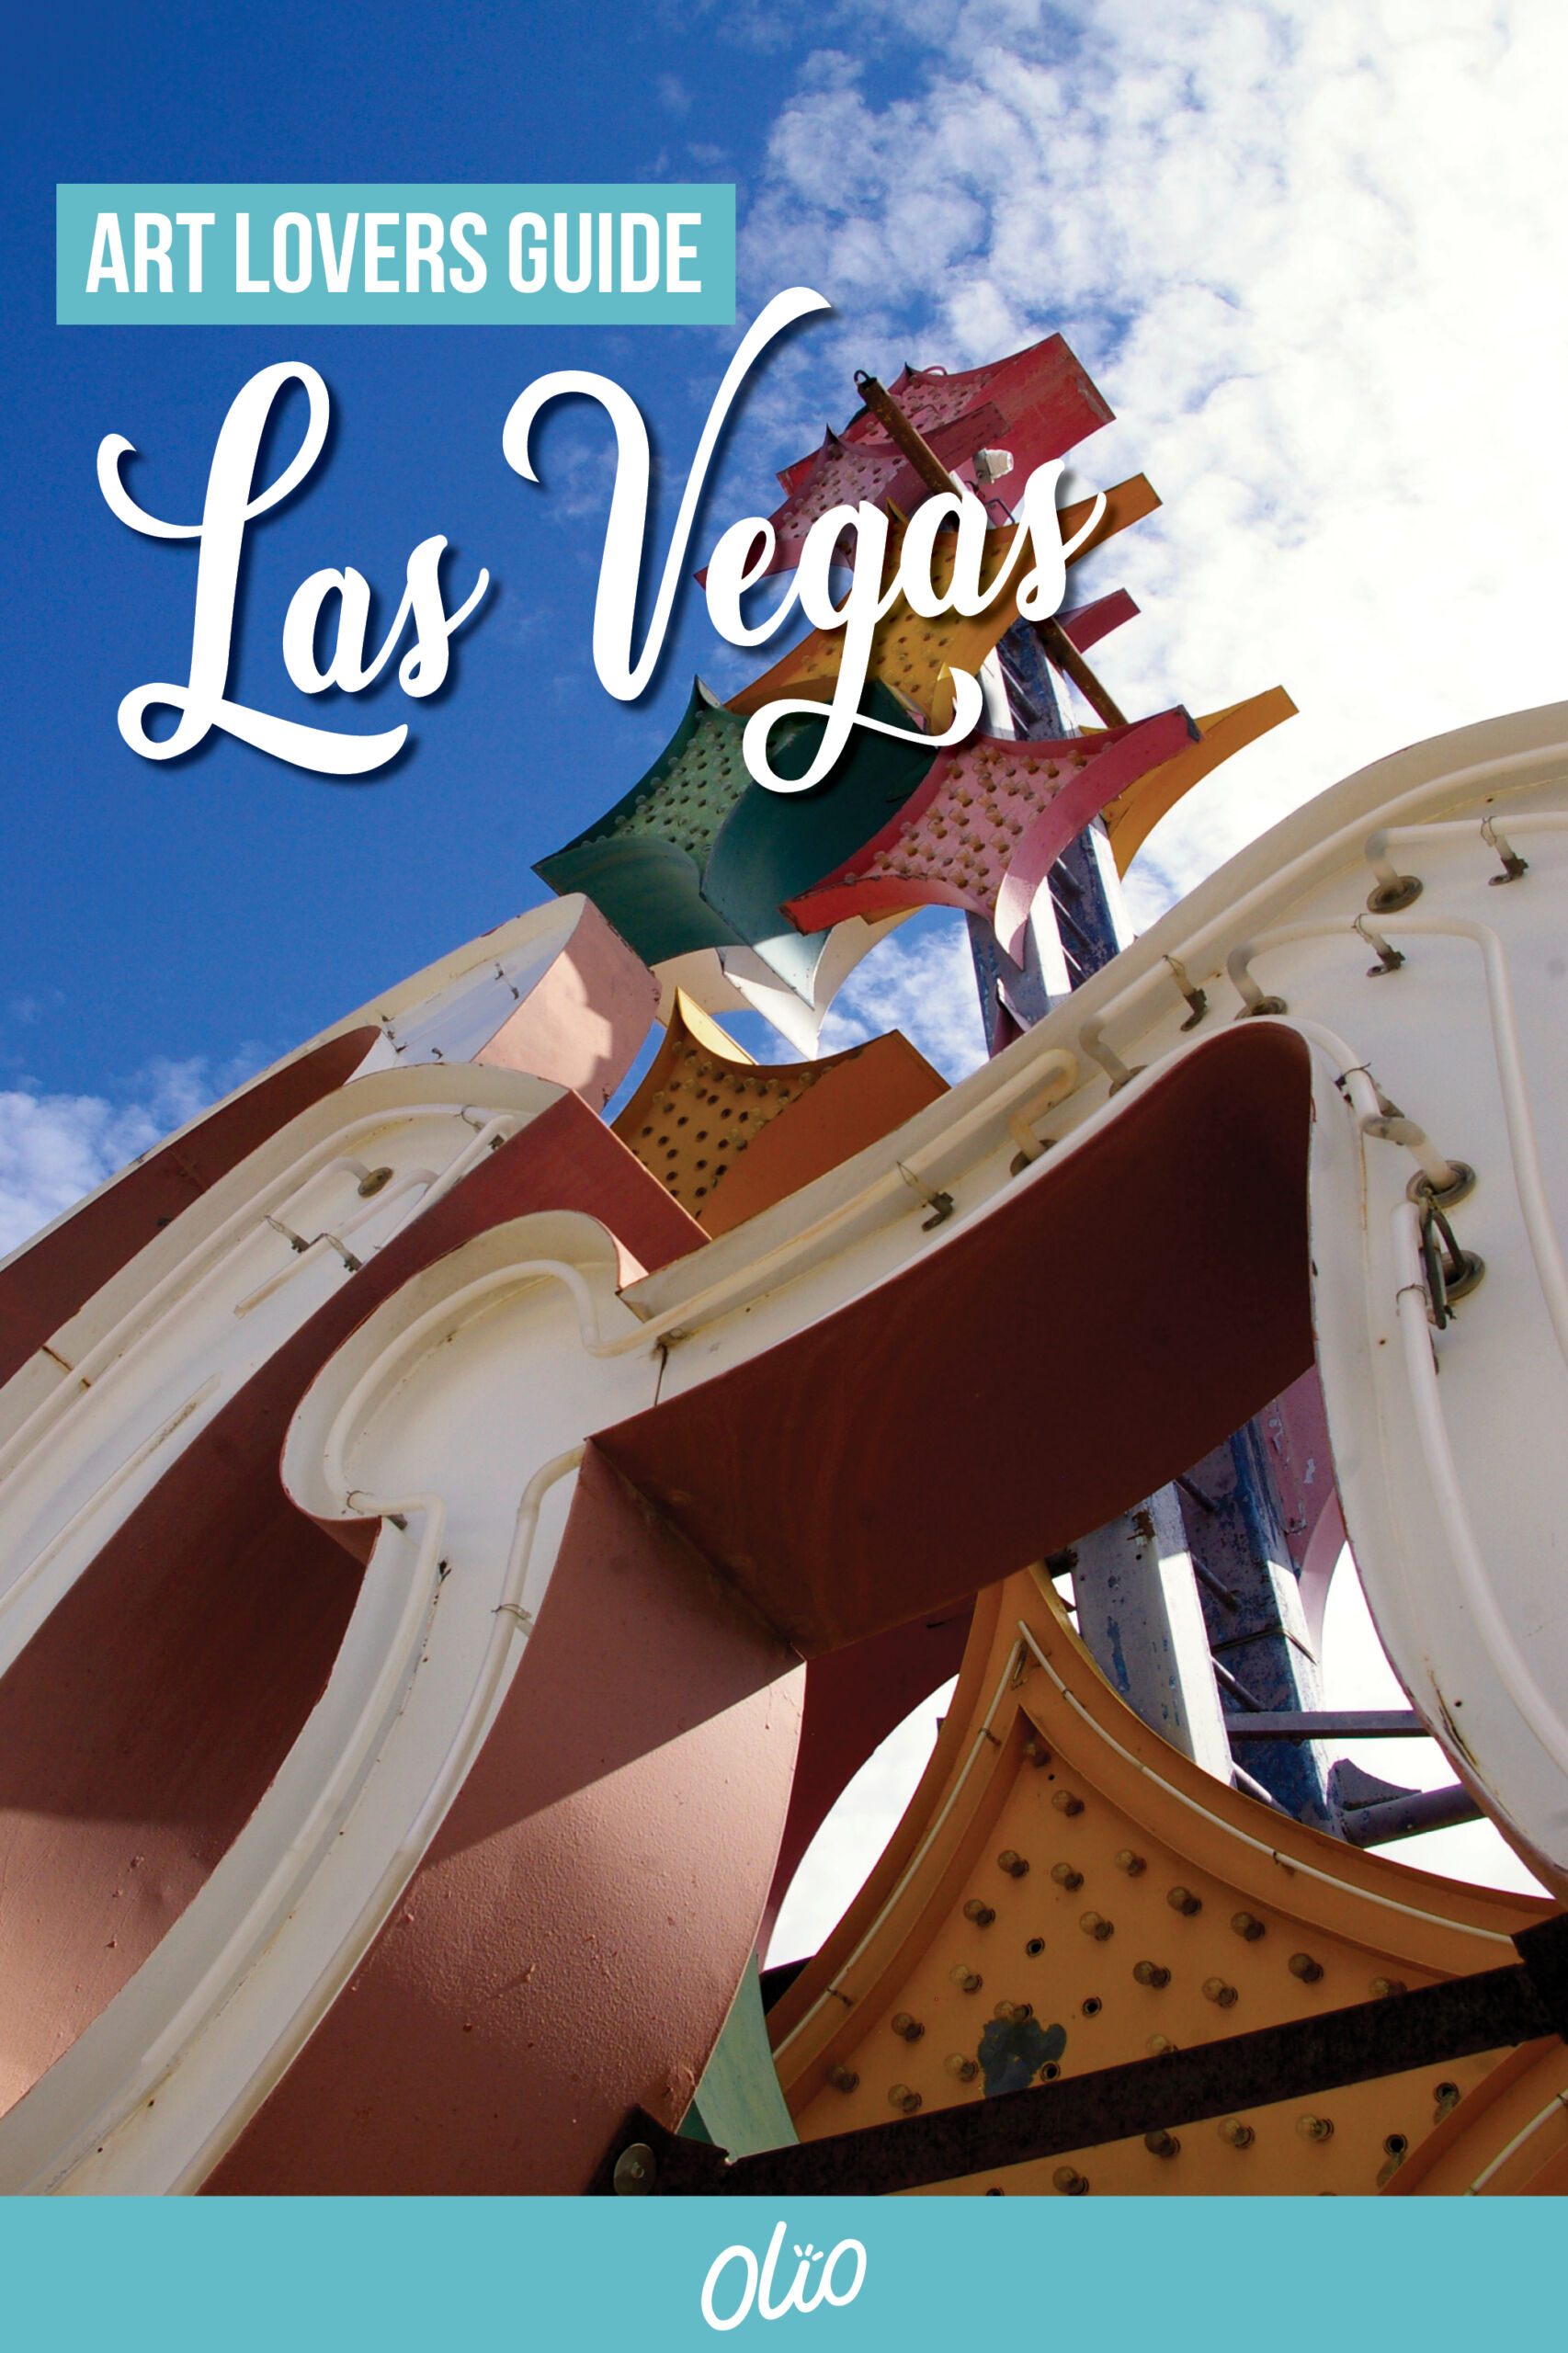 It may not be what immediately comes to mind when you think of Sin City, but there are lots places in Las Vegas for art lovers! From a museum of vintage neon signs to brightly colored installations like Seven Magic Mountains, there are lots of creative places to explore. #Art #LasVegas #Nevada